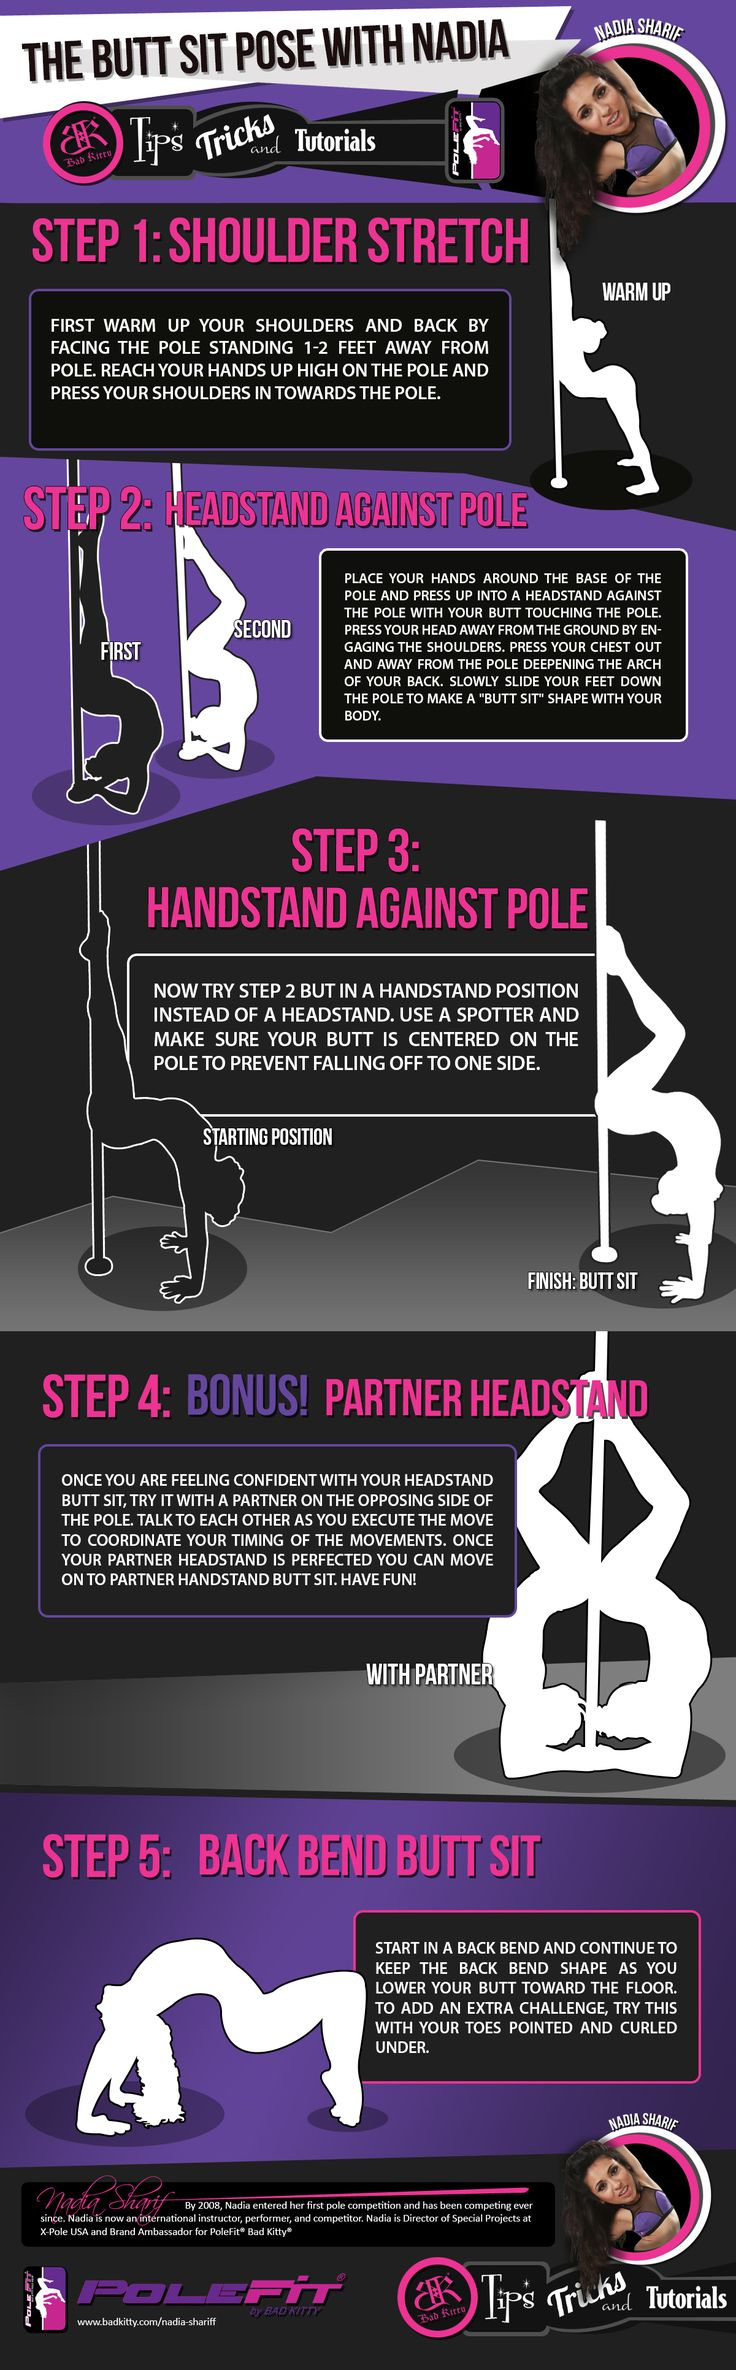 PoleFit Tips and Tricks: The Butt Sit with Nadia Sharif - Bad Kitty Blog | Pole Dancing